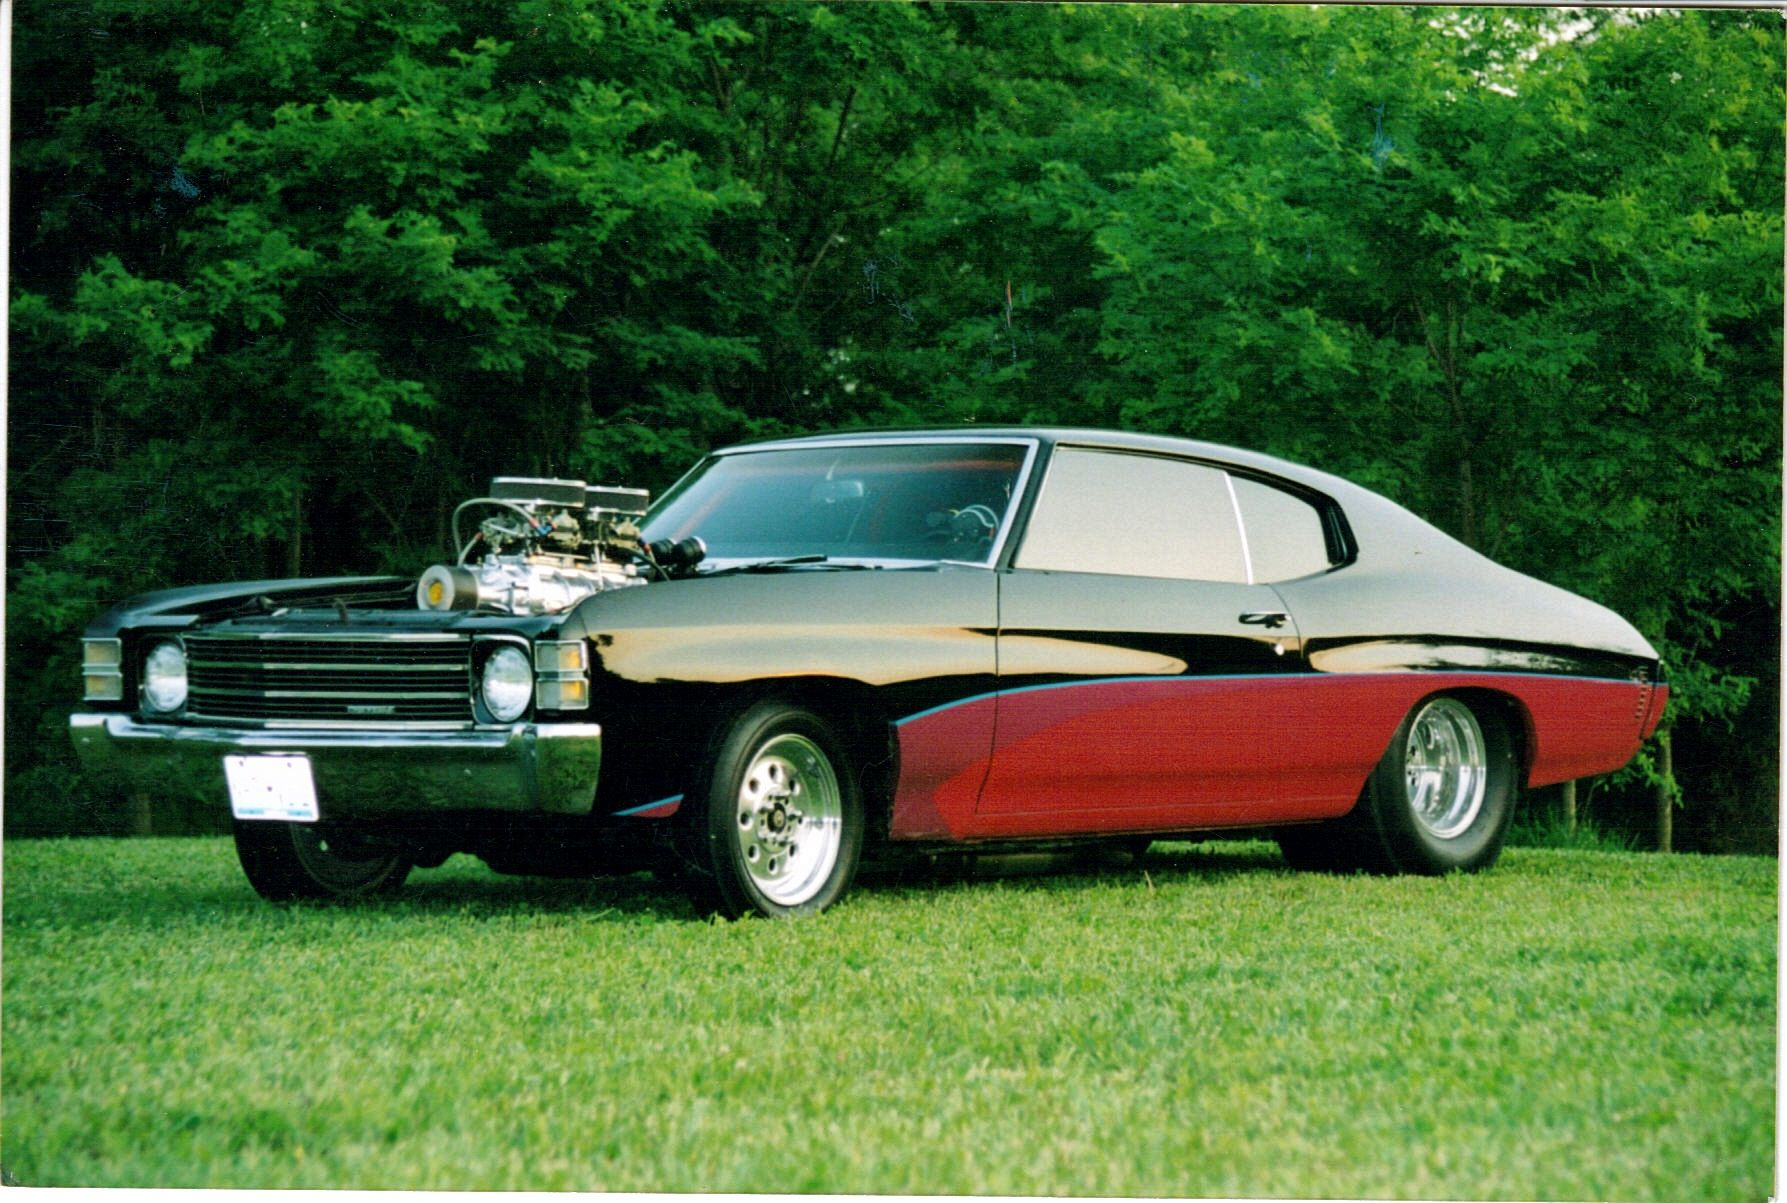 1971 Chevelle | Chevelles | Pinterest | Cars, Muscles and Dream cars